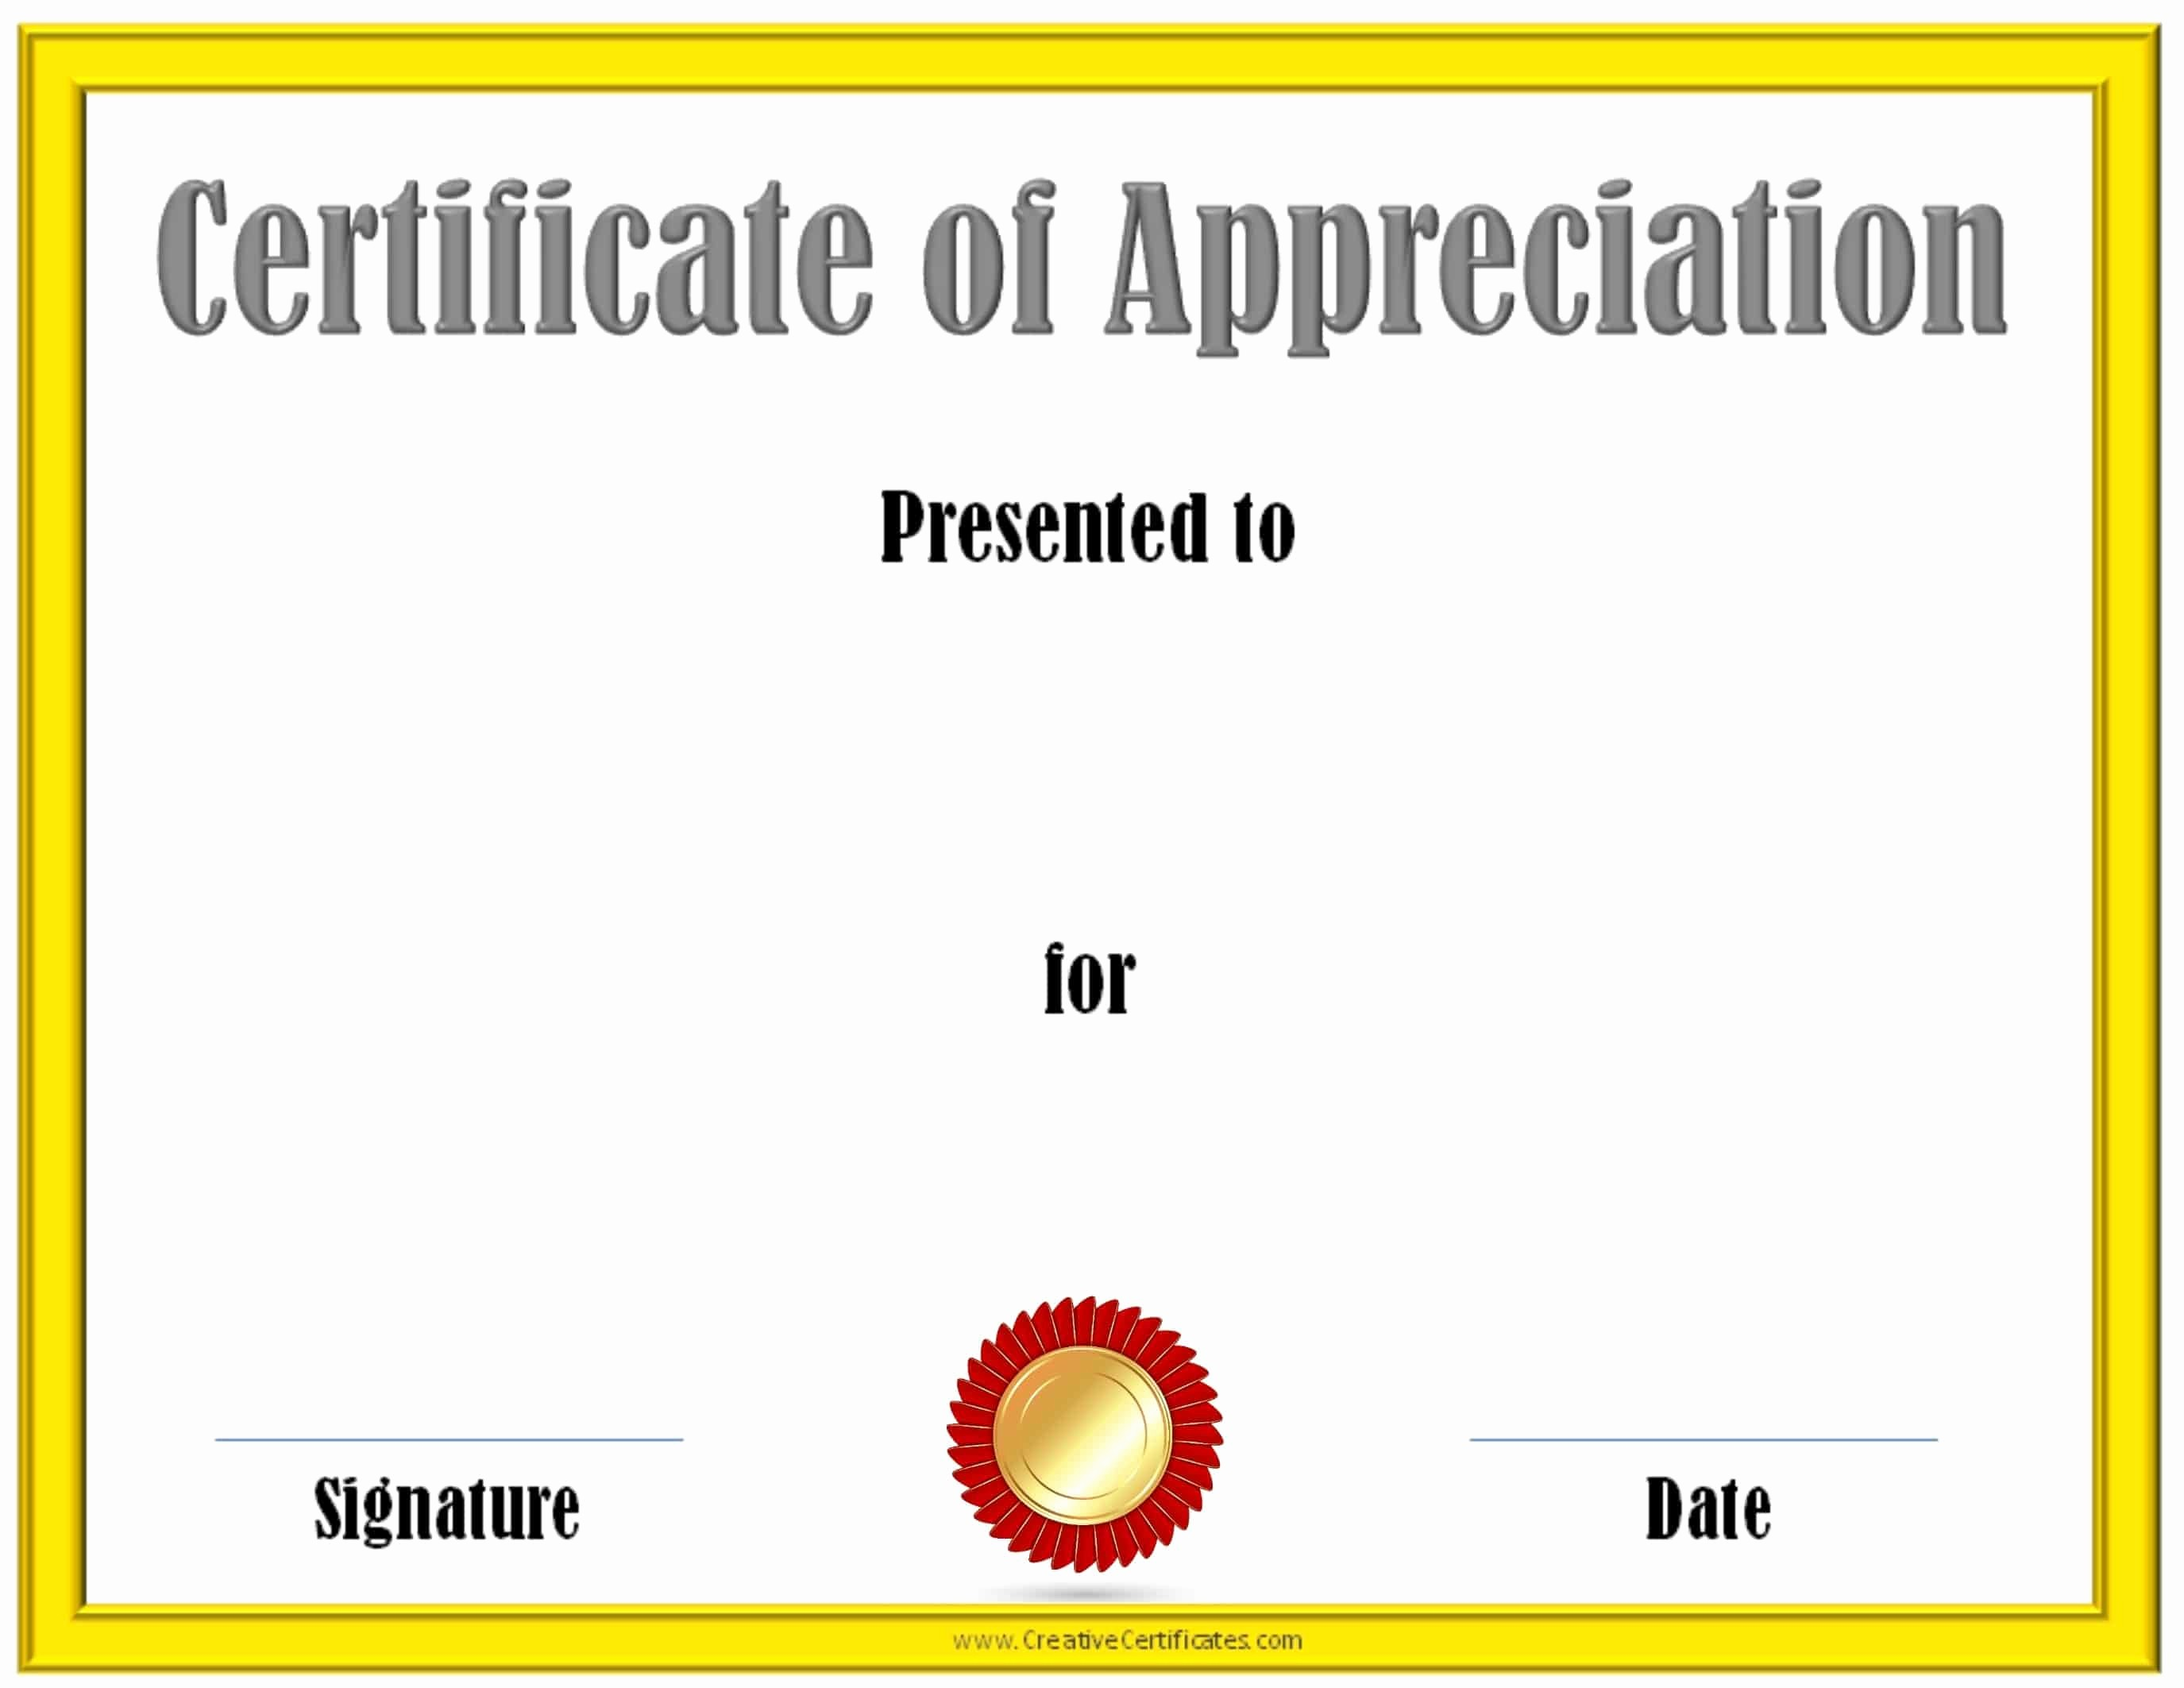 Recognition Certificate Templates Free Printable Best Of Free Editable Certificate Of Appreciation